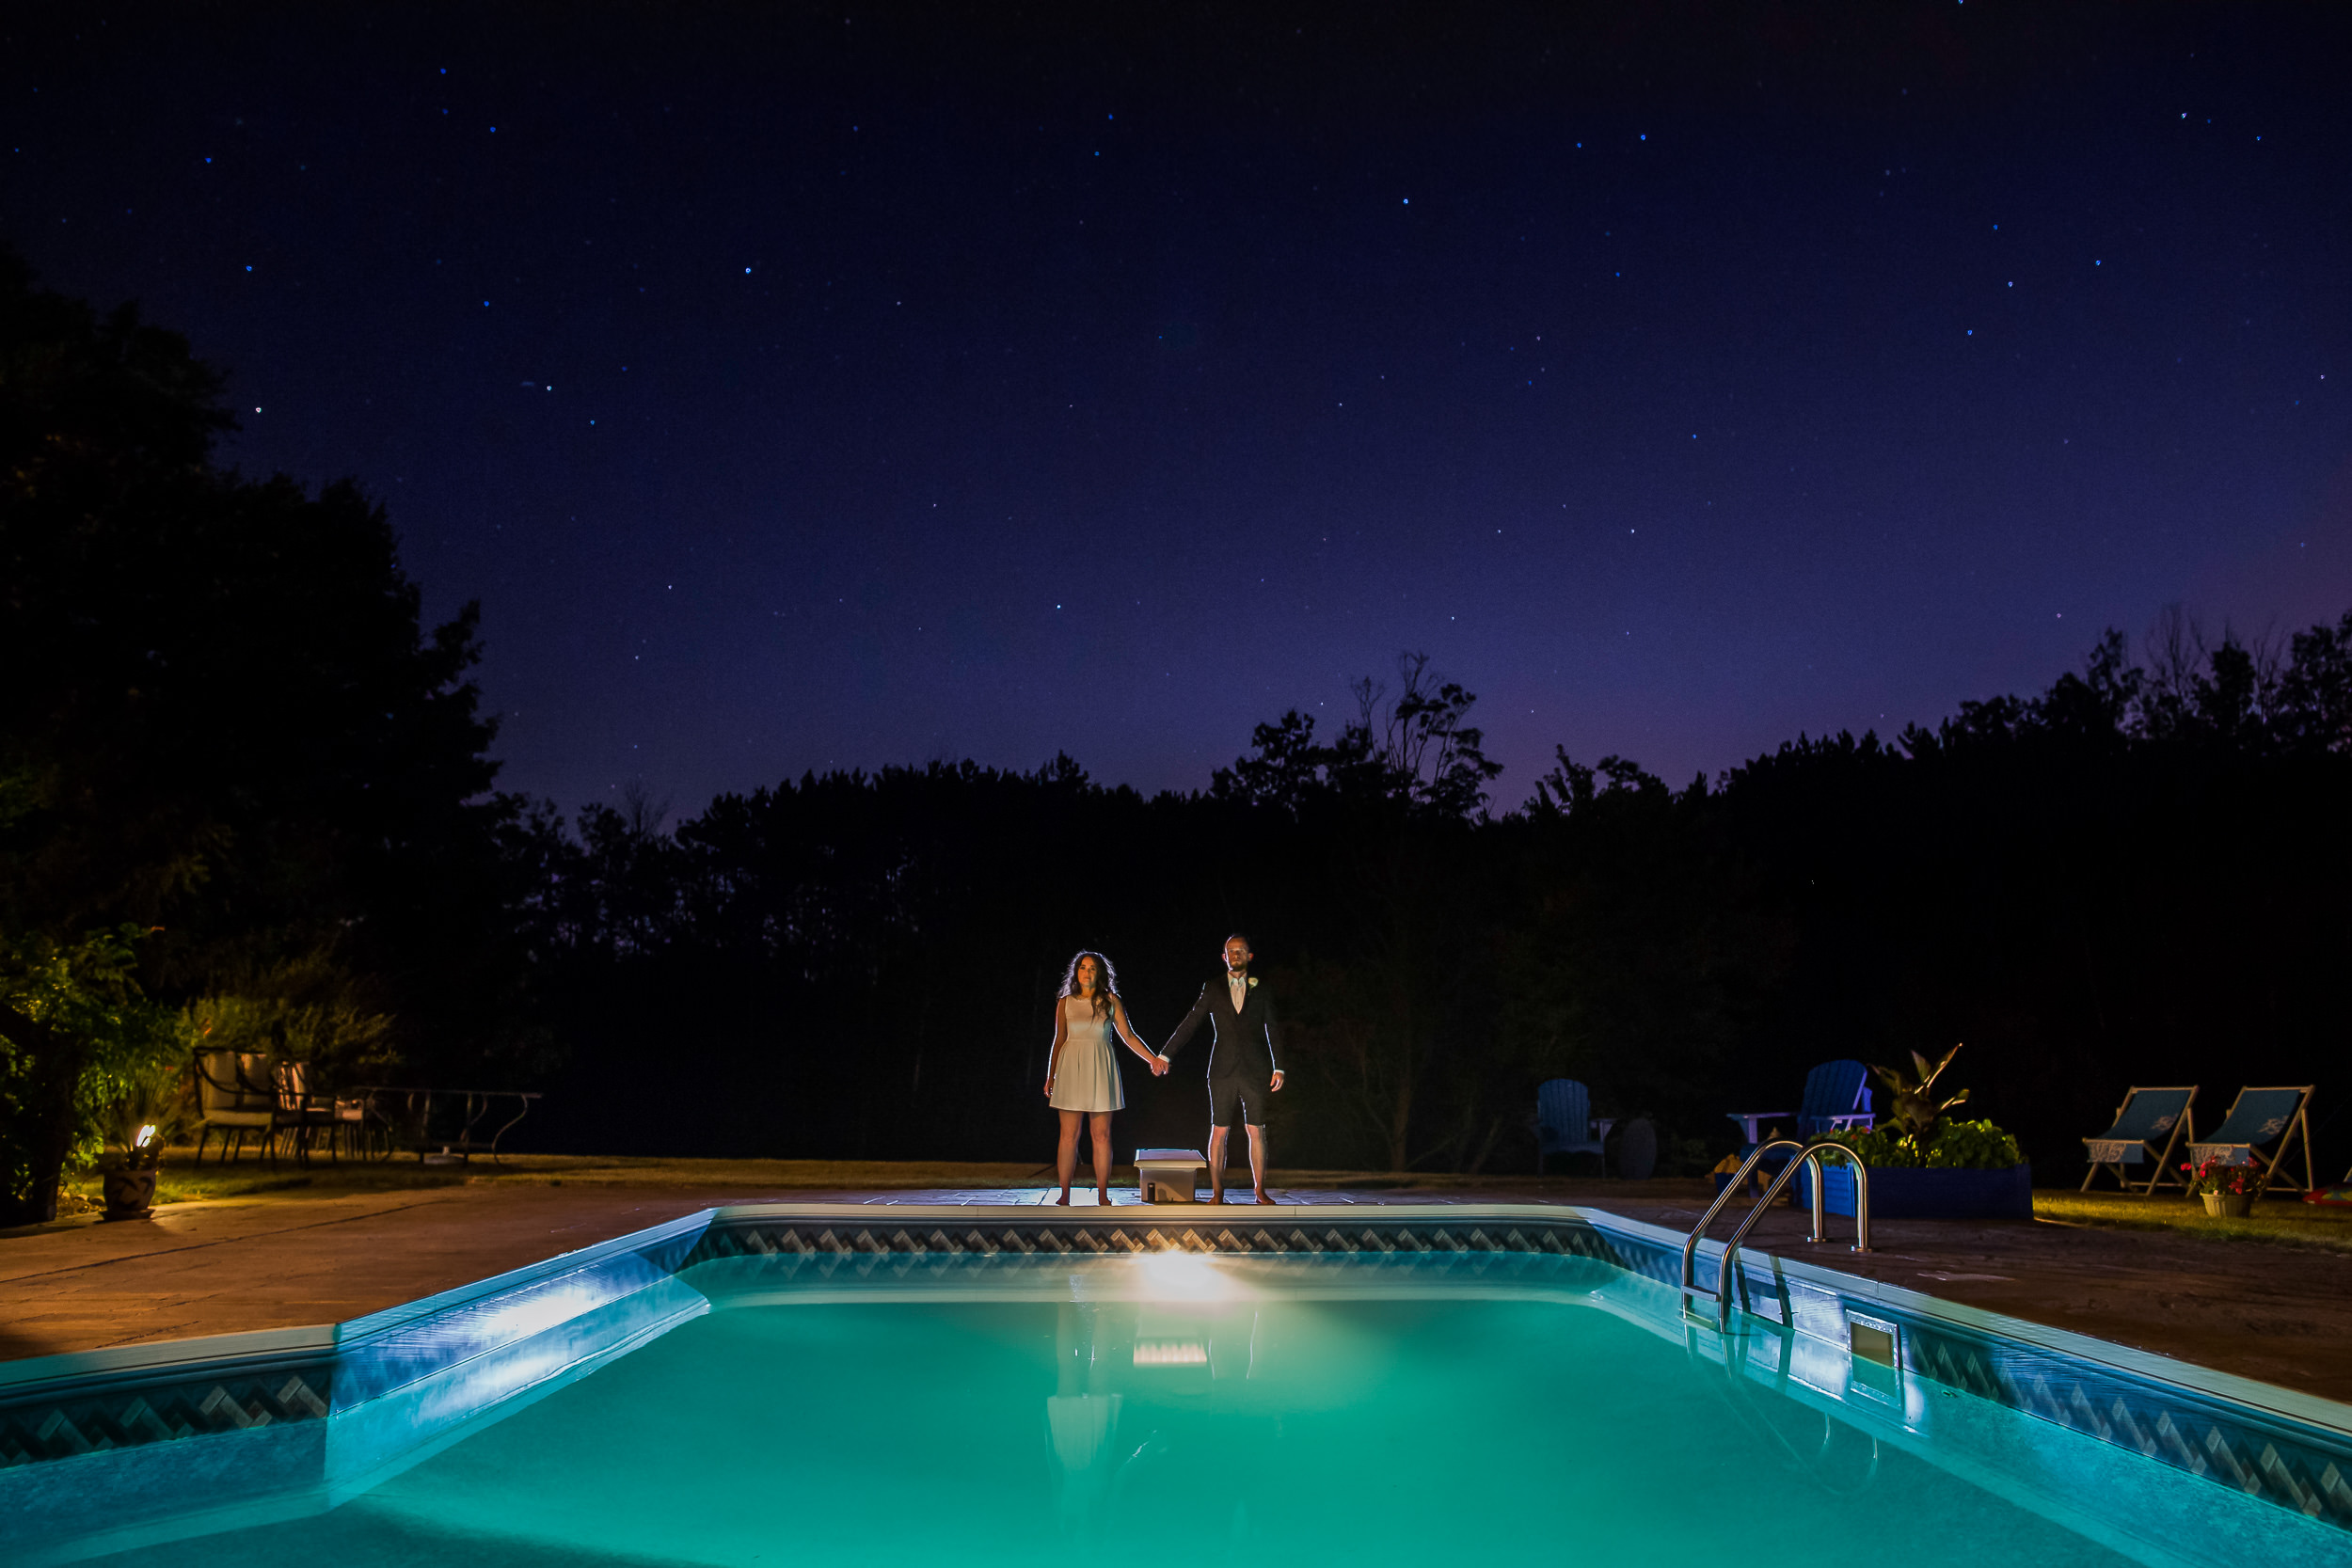 Night time photography - Canadian wedding - swimming pool at a wedding